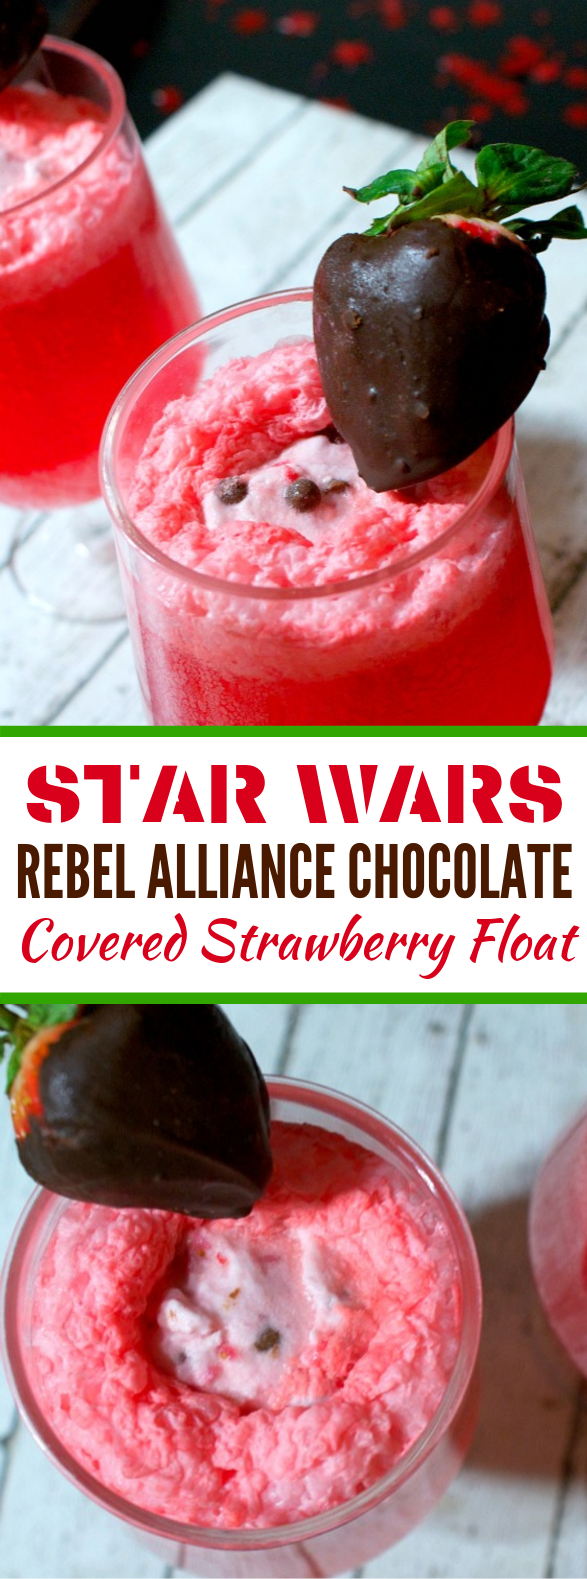 STAR WARS REBEL ALLIANCE CHOCOLATE-COVERED STRAWBERRY FLOAT #drinks #smoothies